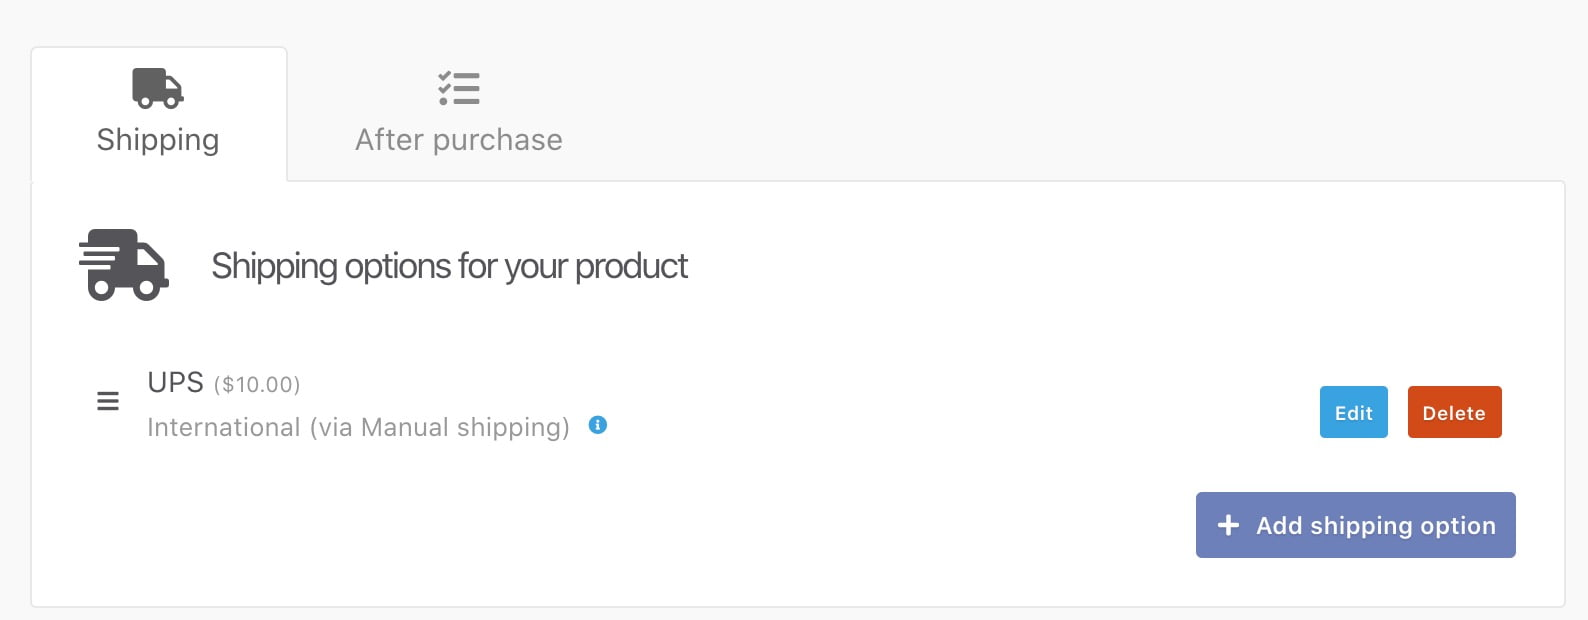 Shipping options for your product